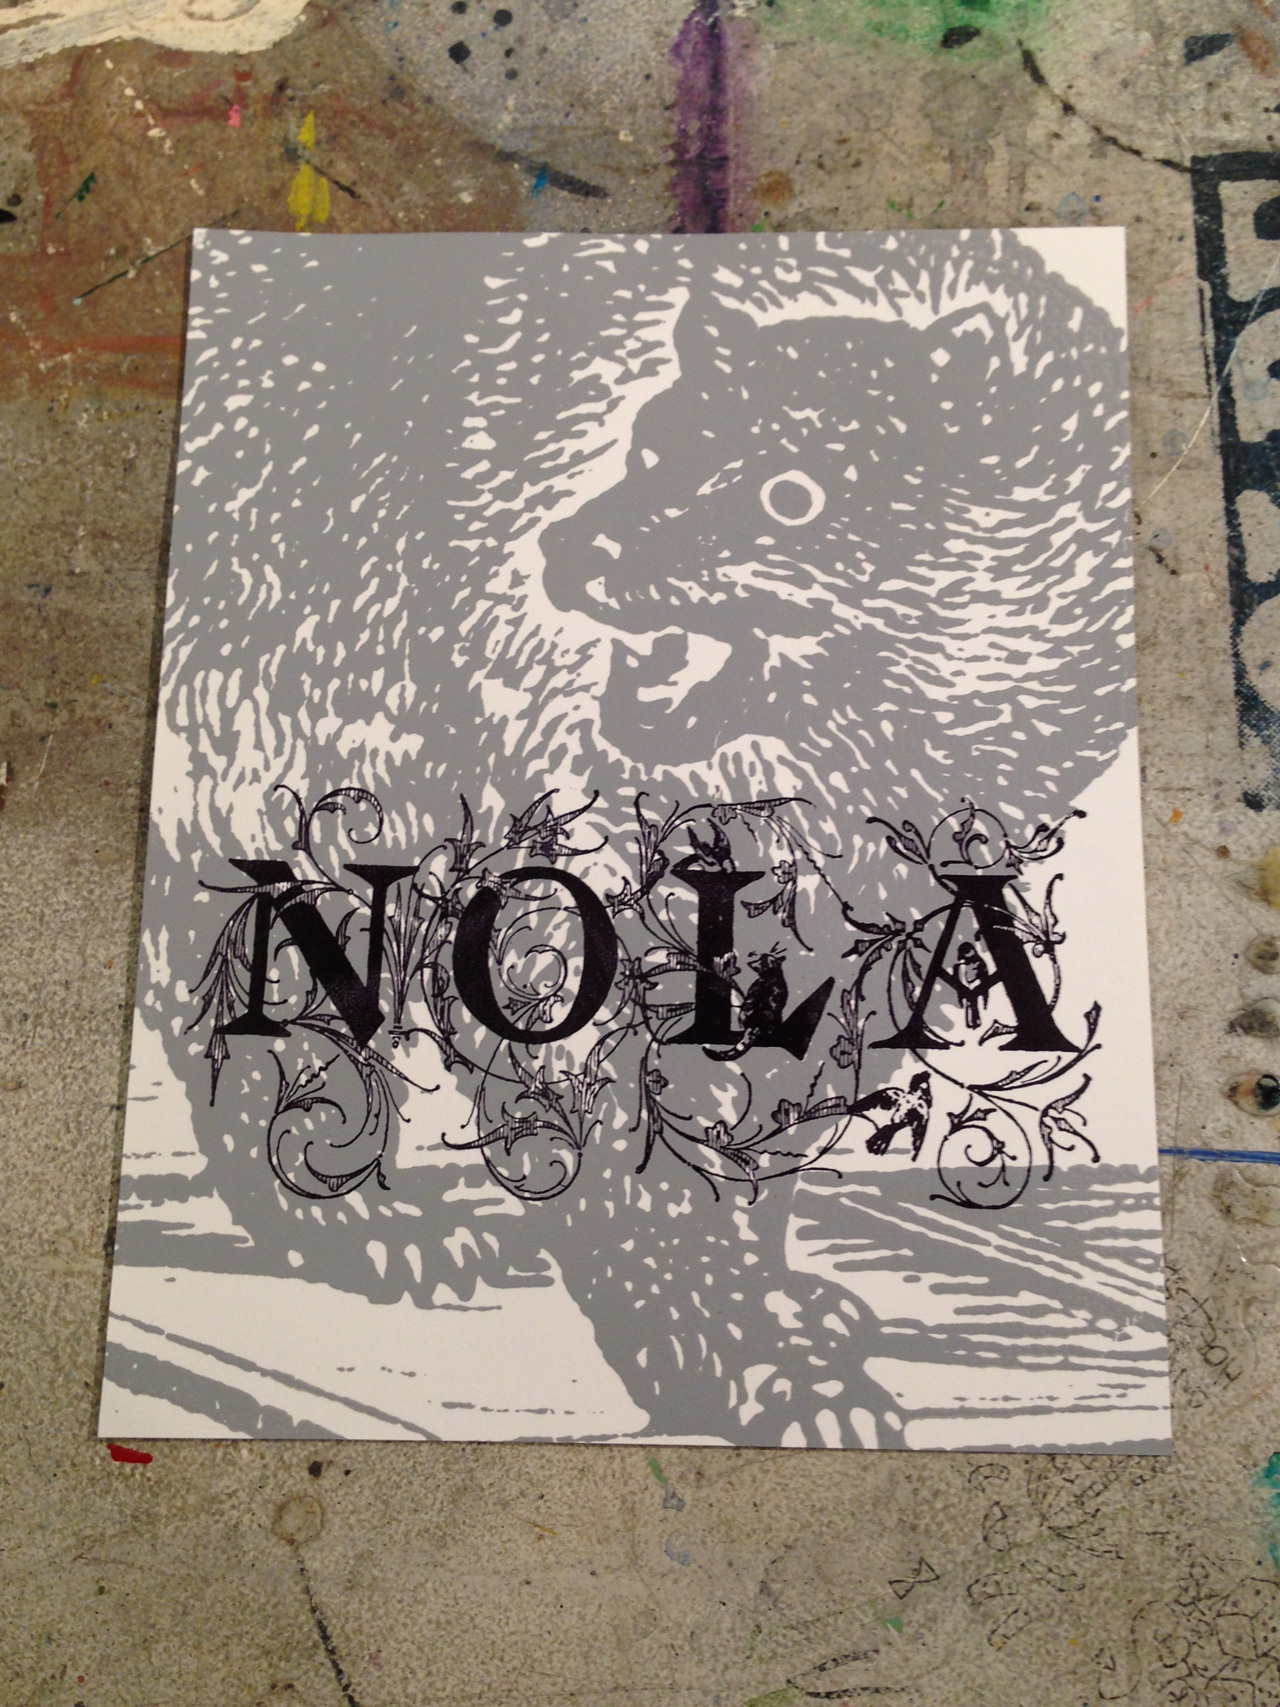 NOLA_poster_bear_purple.jpg